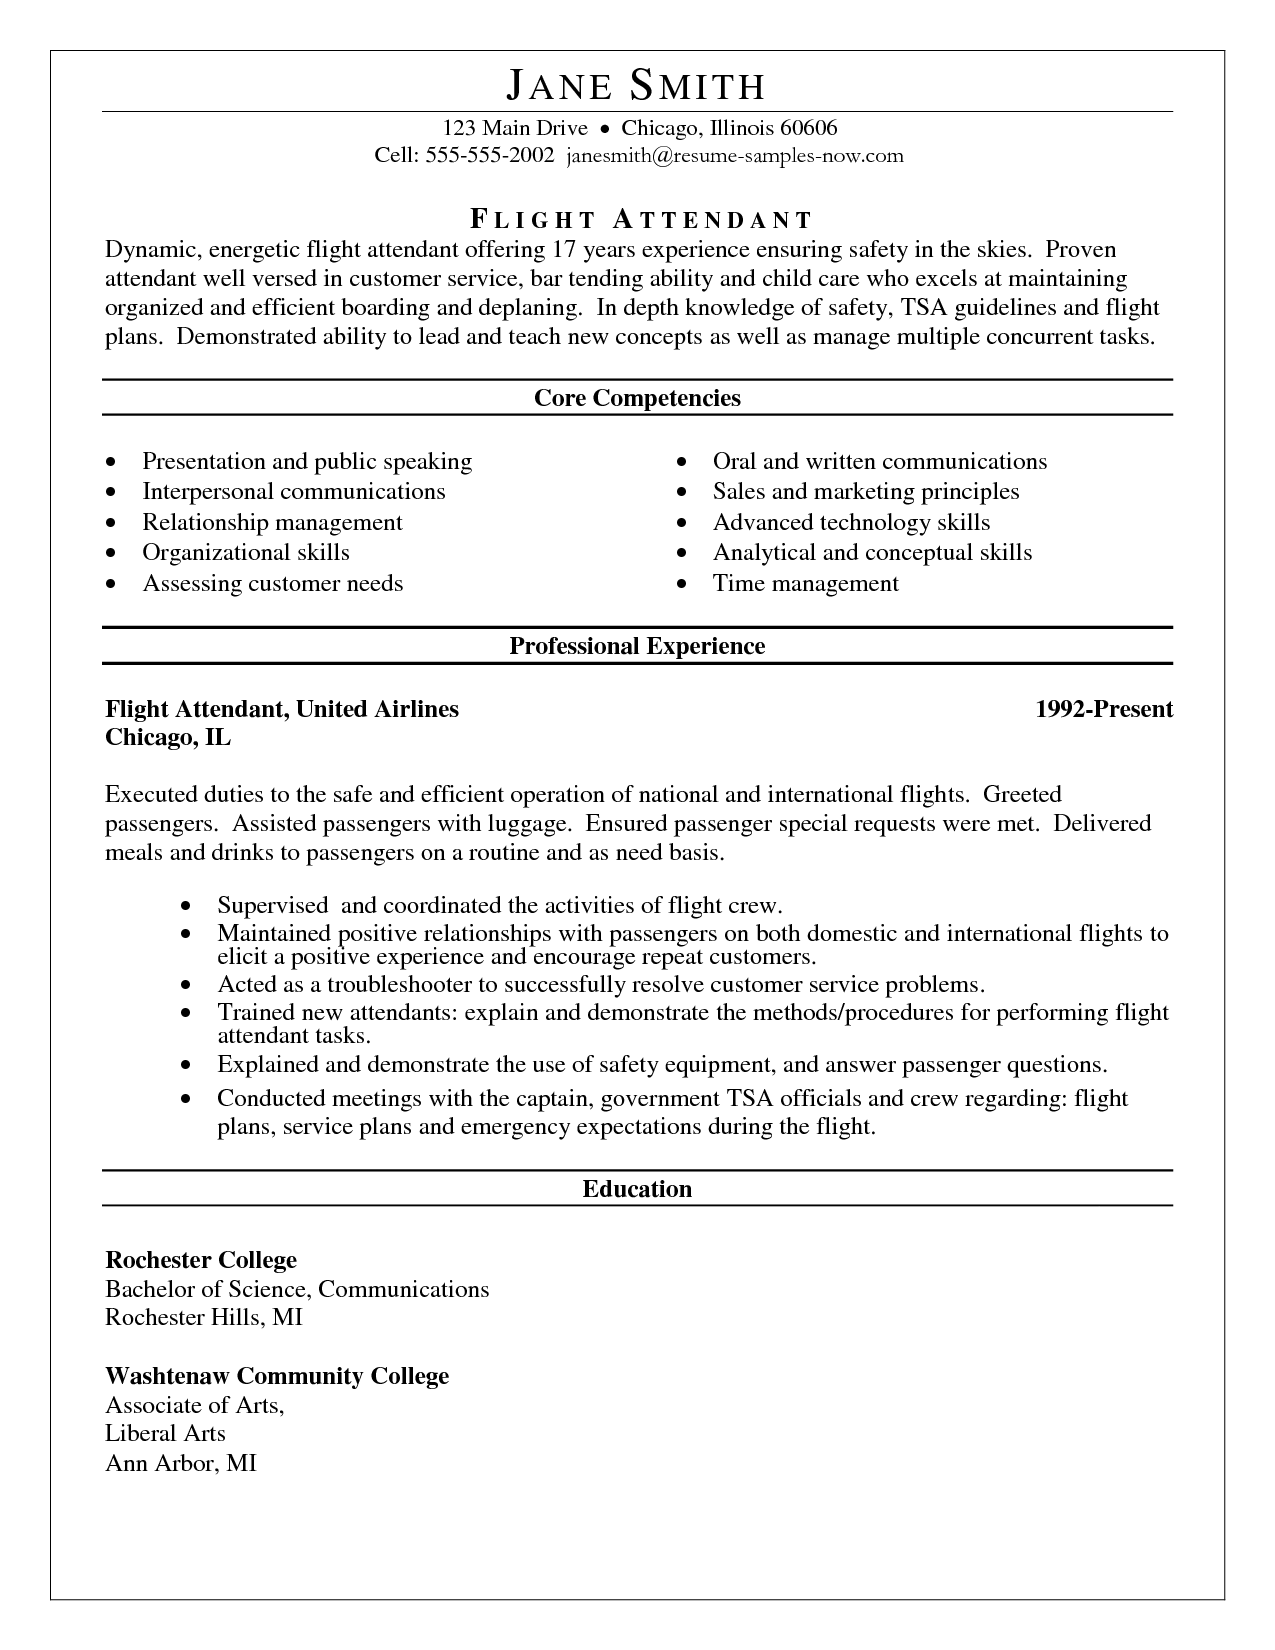 Resume Templates Competencies 28 Images Competencies Resume